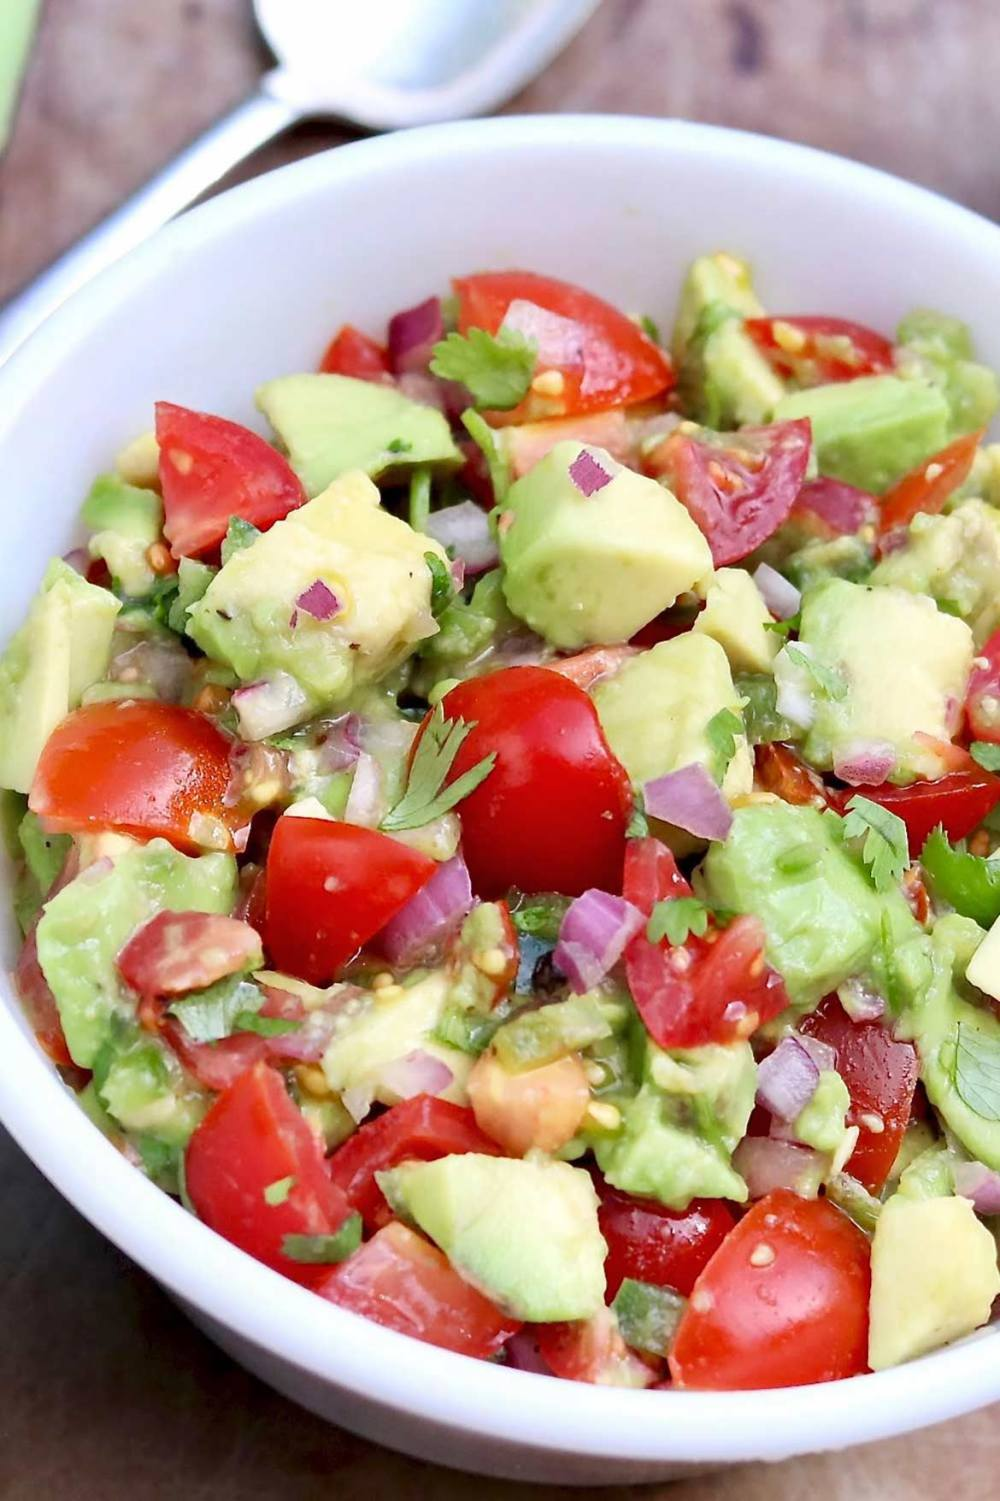 Avocado Tomato Salsa – This super simple salsa adds flavor and flare to chicken, fish, beans, salads, and eggs. Or use it in place of guacamole in your favorite south-of-the-border recipes or as a dip with tortilla chips!